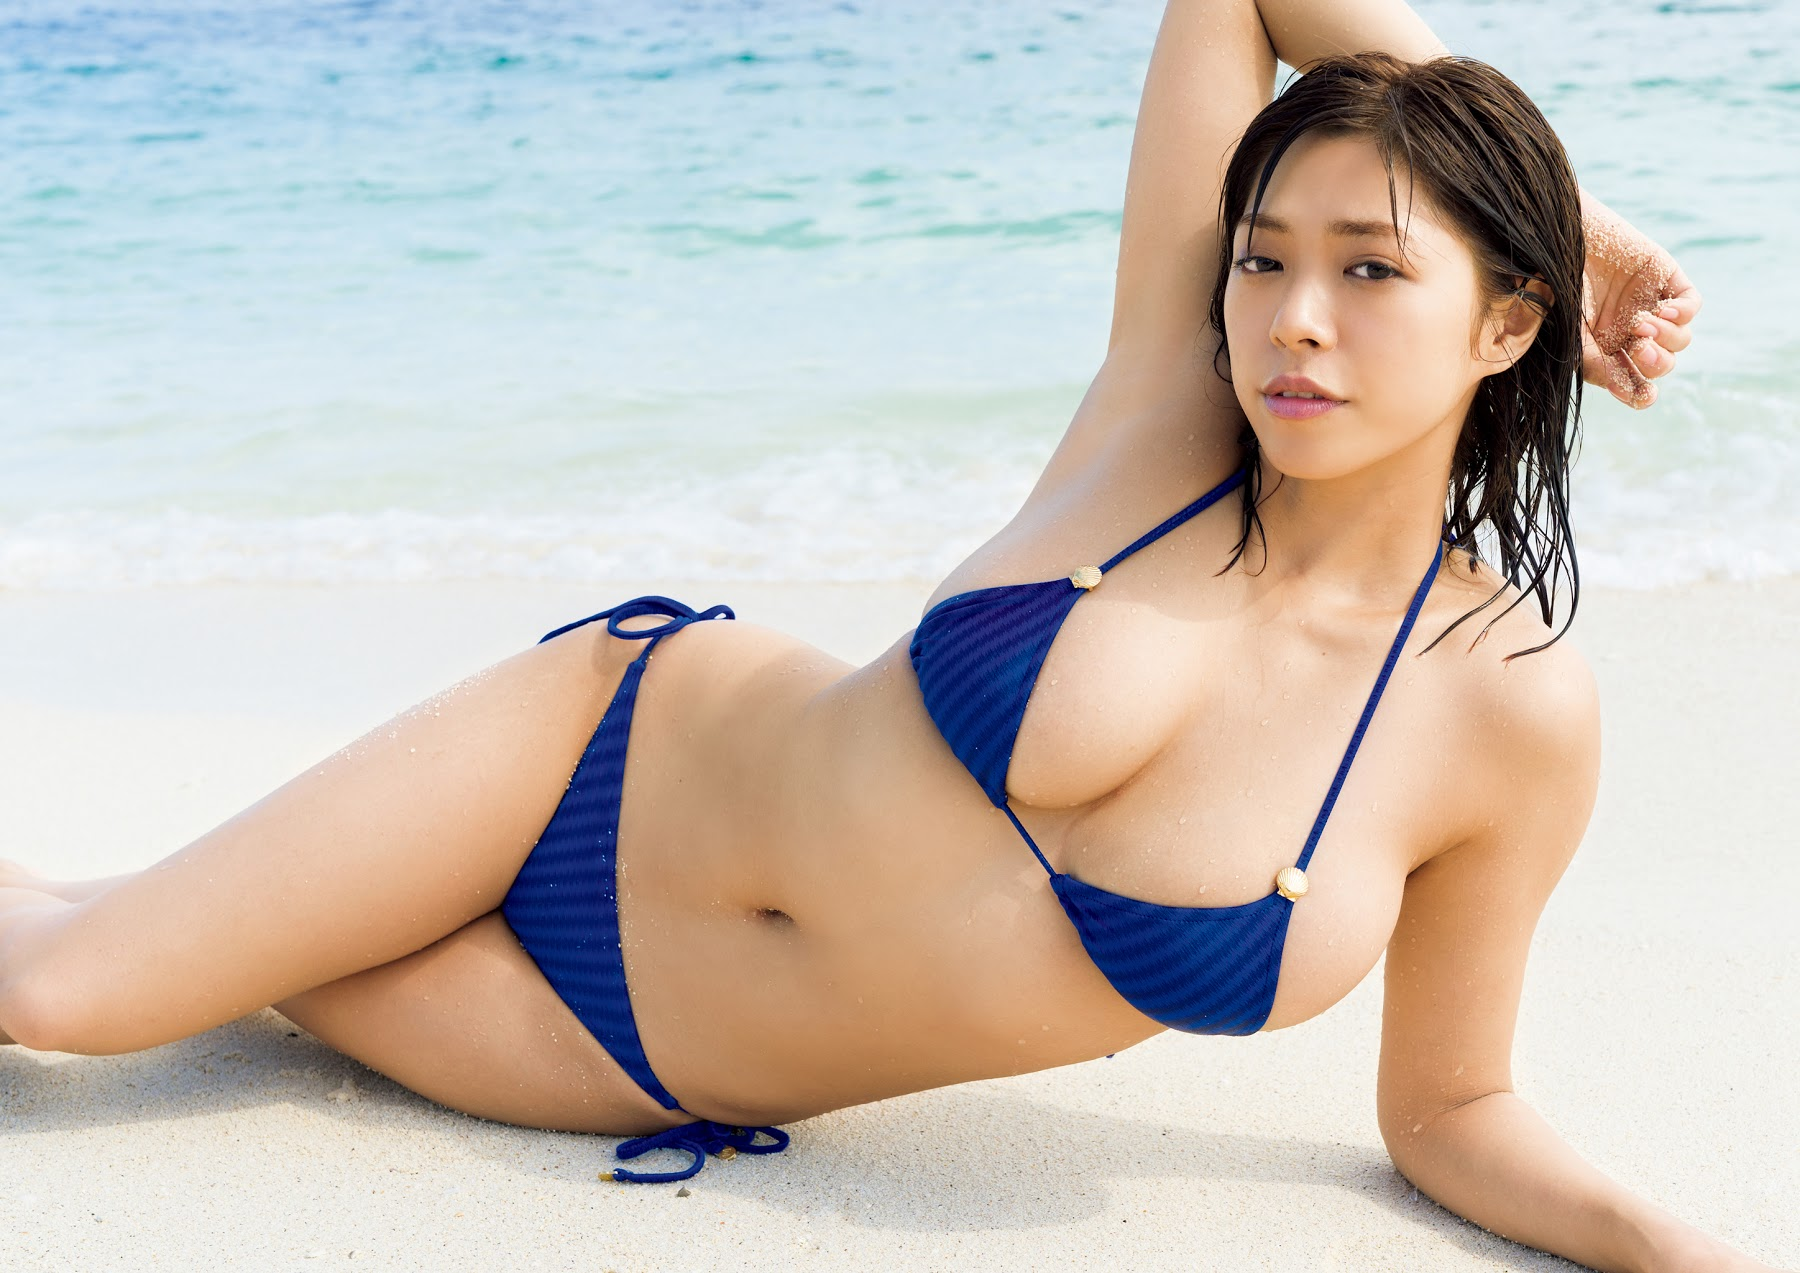 Super body of H cup Minami Wachi 2020 that exposes body and mind in tropical Thailand113